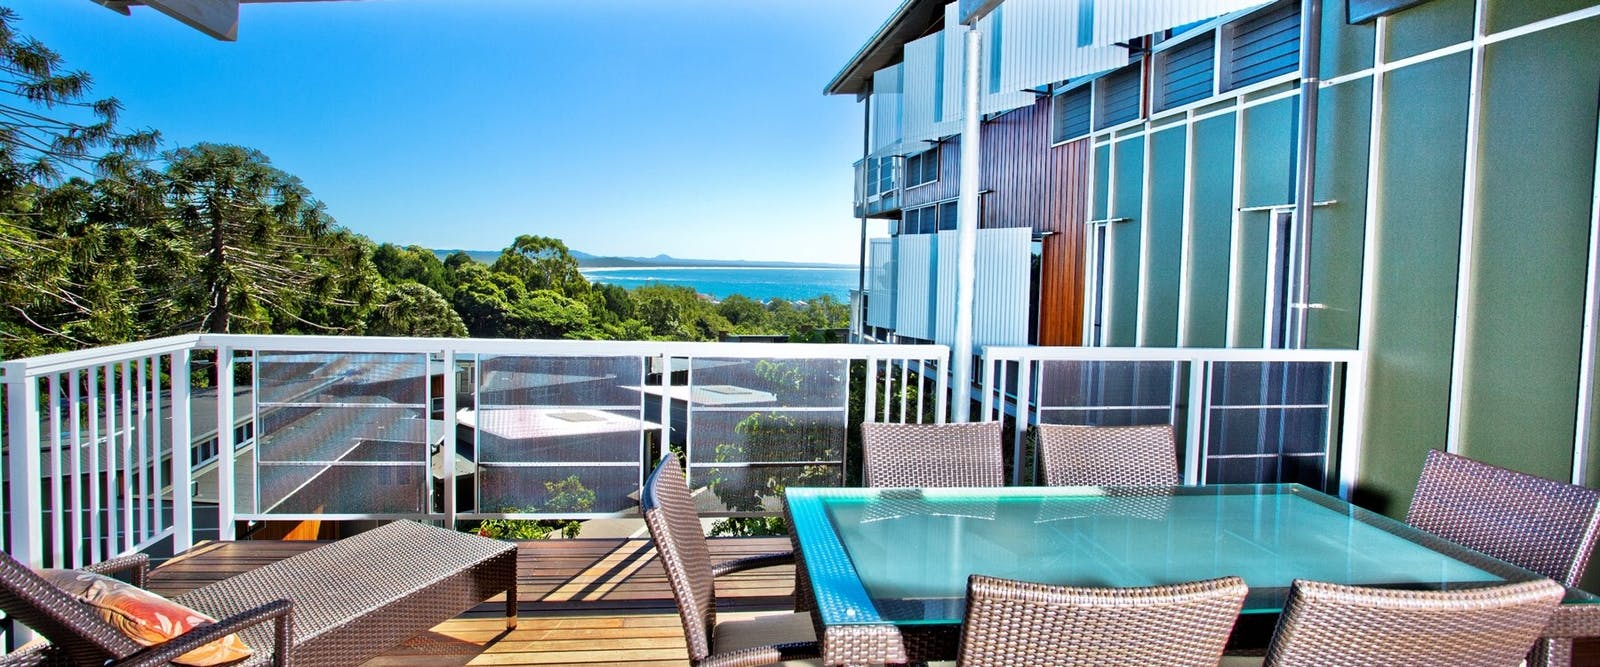 Three bedroom deluxe villa balcony, Peppers Noosa Resort and Villas